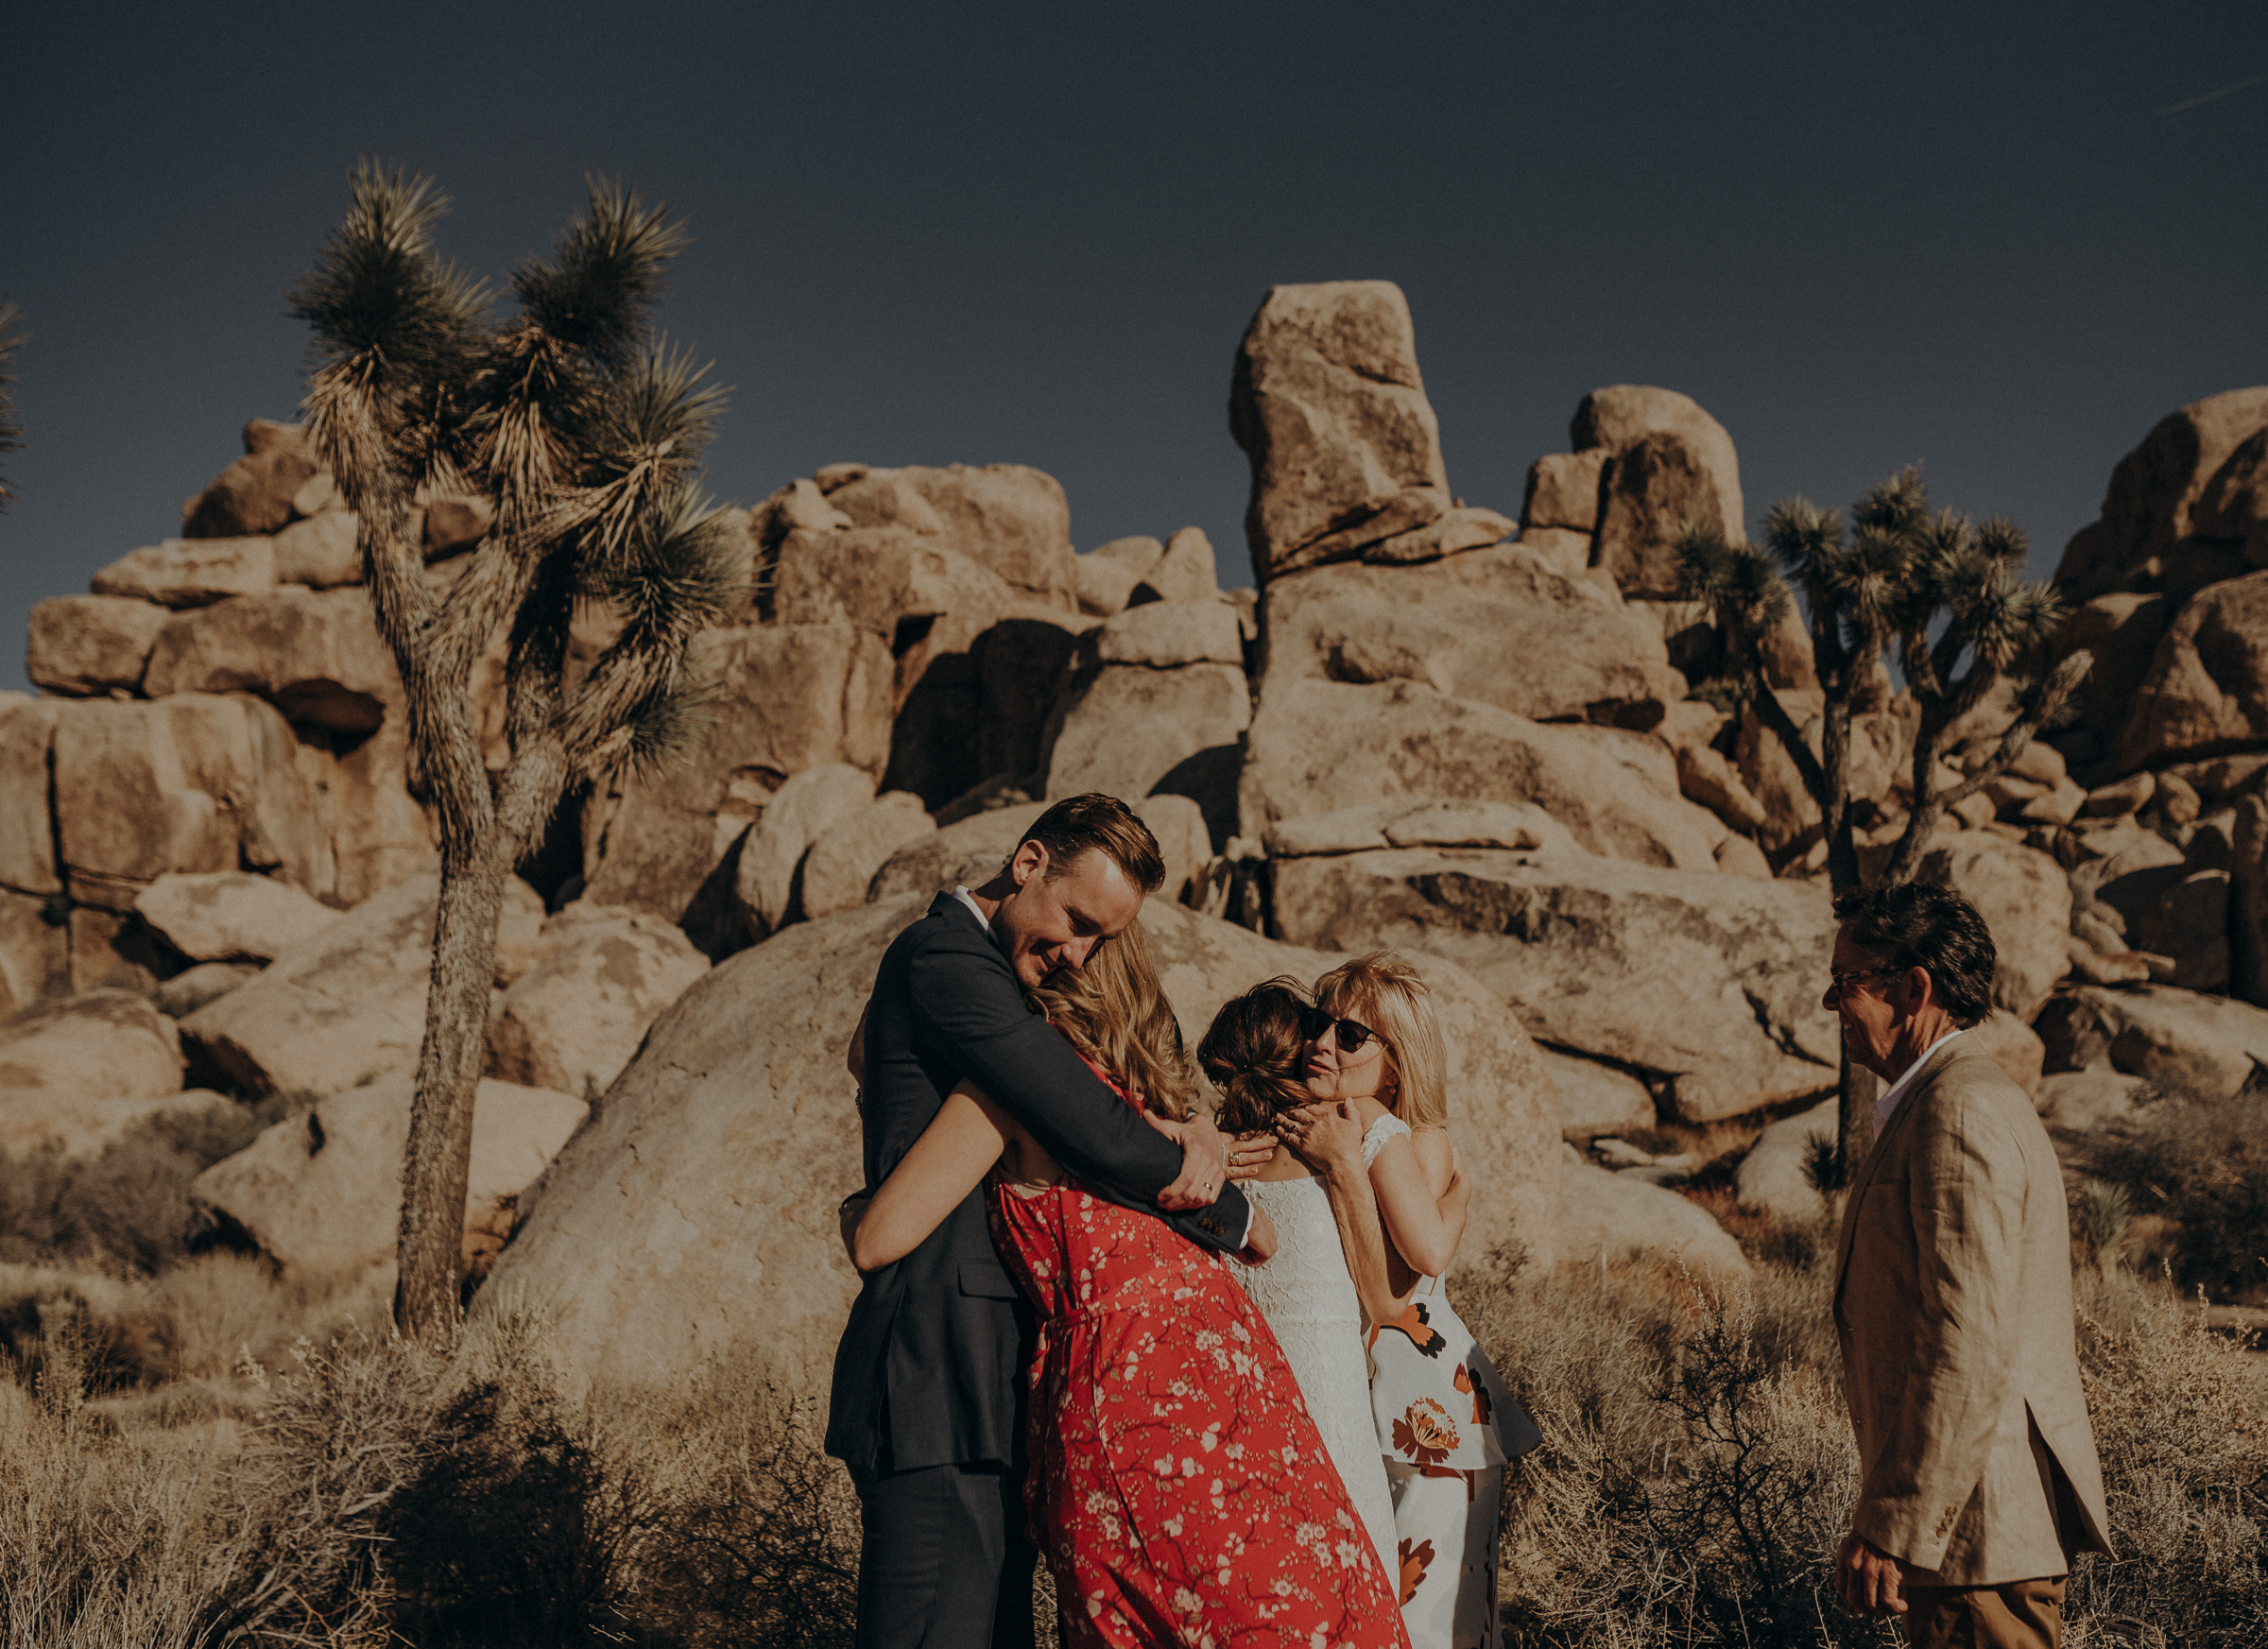 Joshua Tree Elopement - Los Angeles Wedding Photographers - IsaiahAndTaylor.com-034.jpg